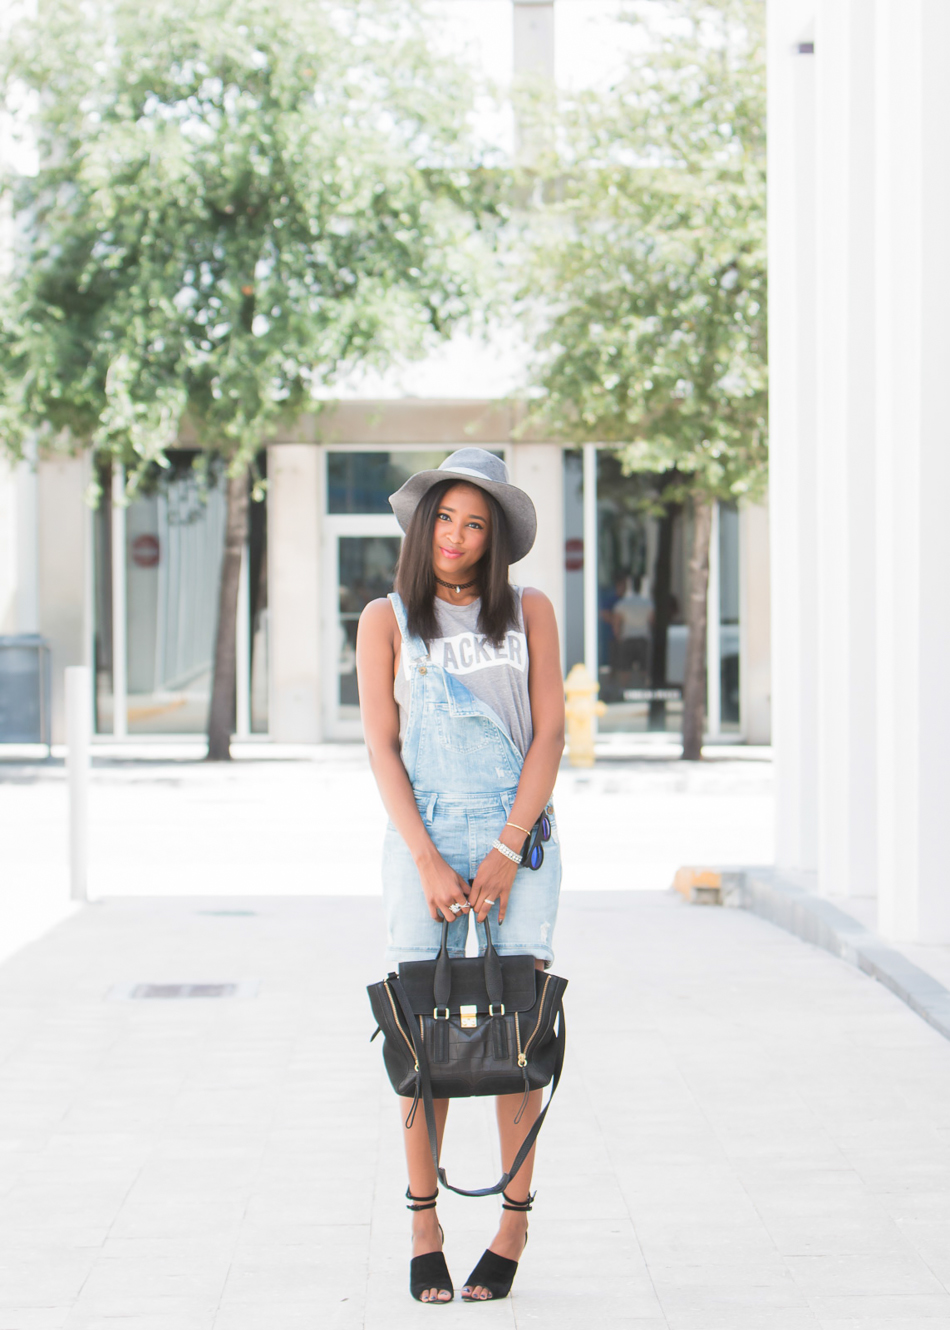 miami-overalls-outfit-design-district-gen-and-gus